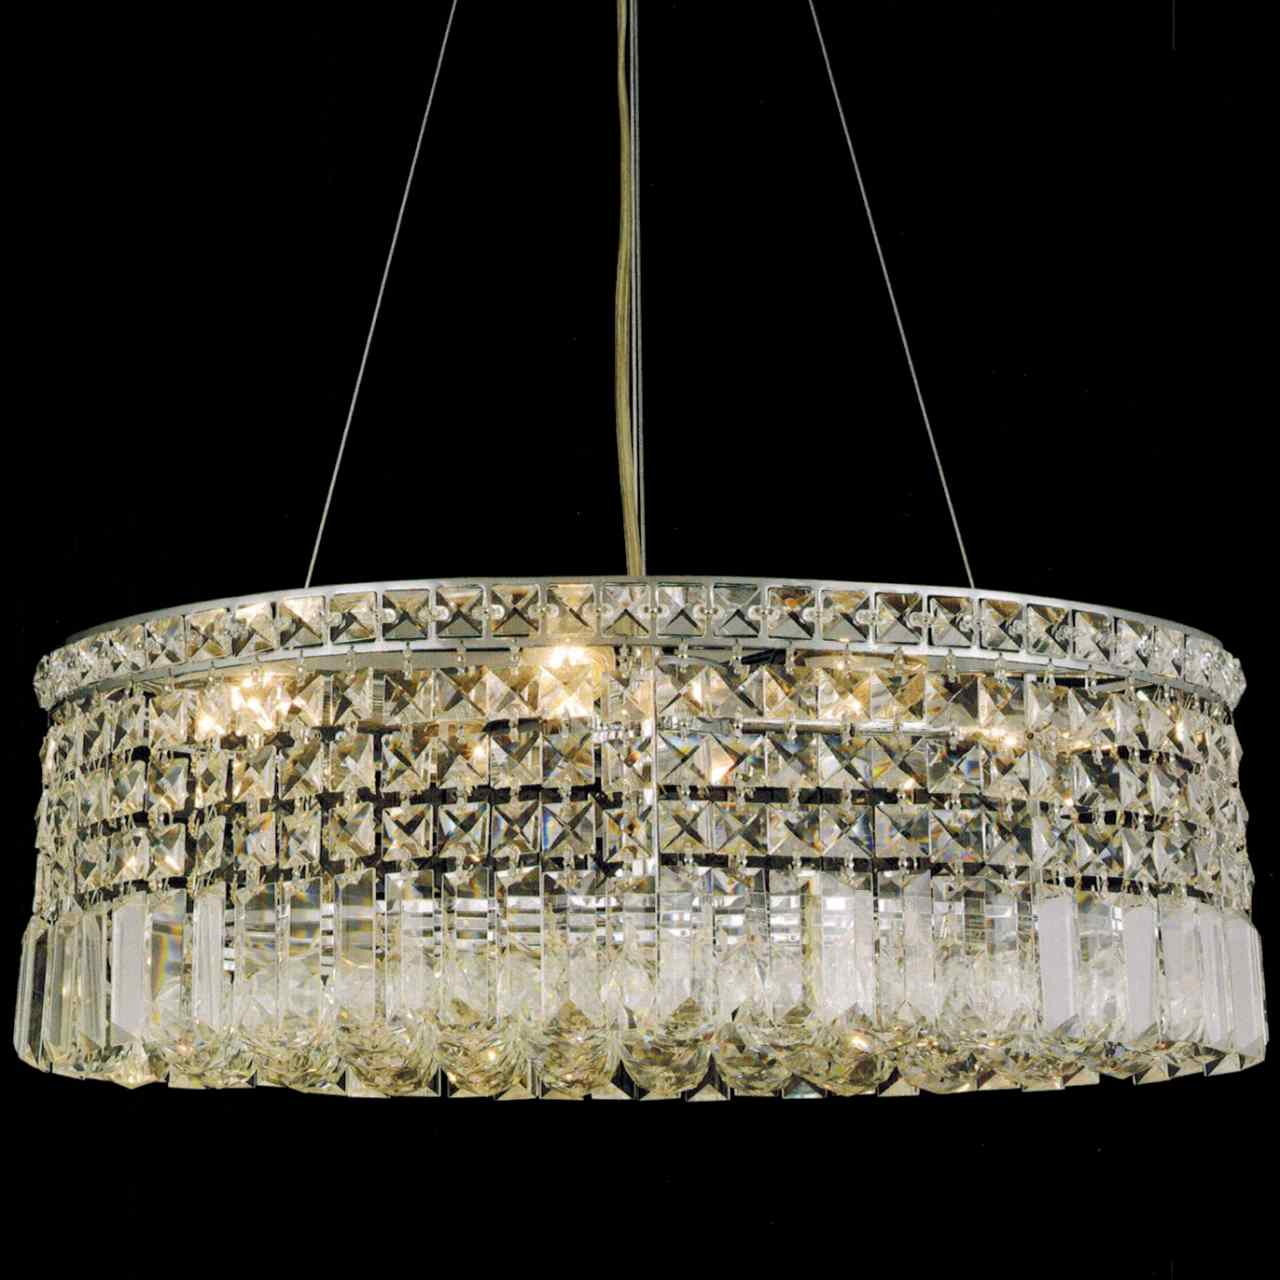 pendant sale lighting lights chandelier silverplated modern master furniture light for crystal id chandeliers century f austiran mid bakalowits